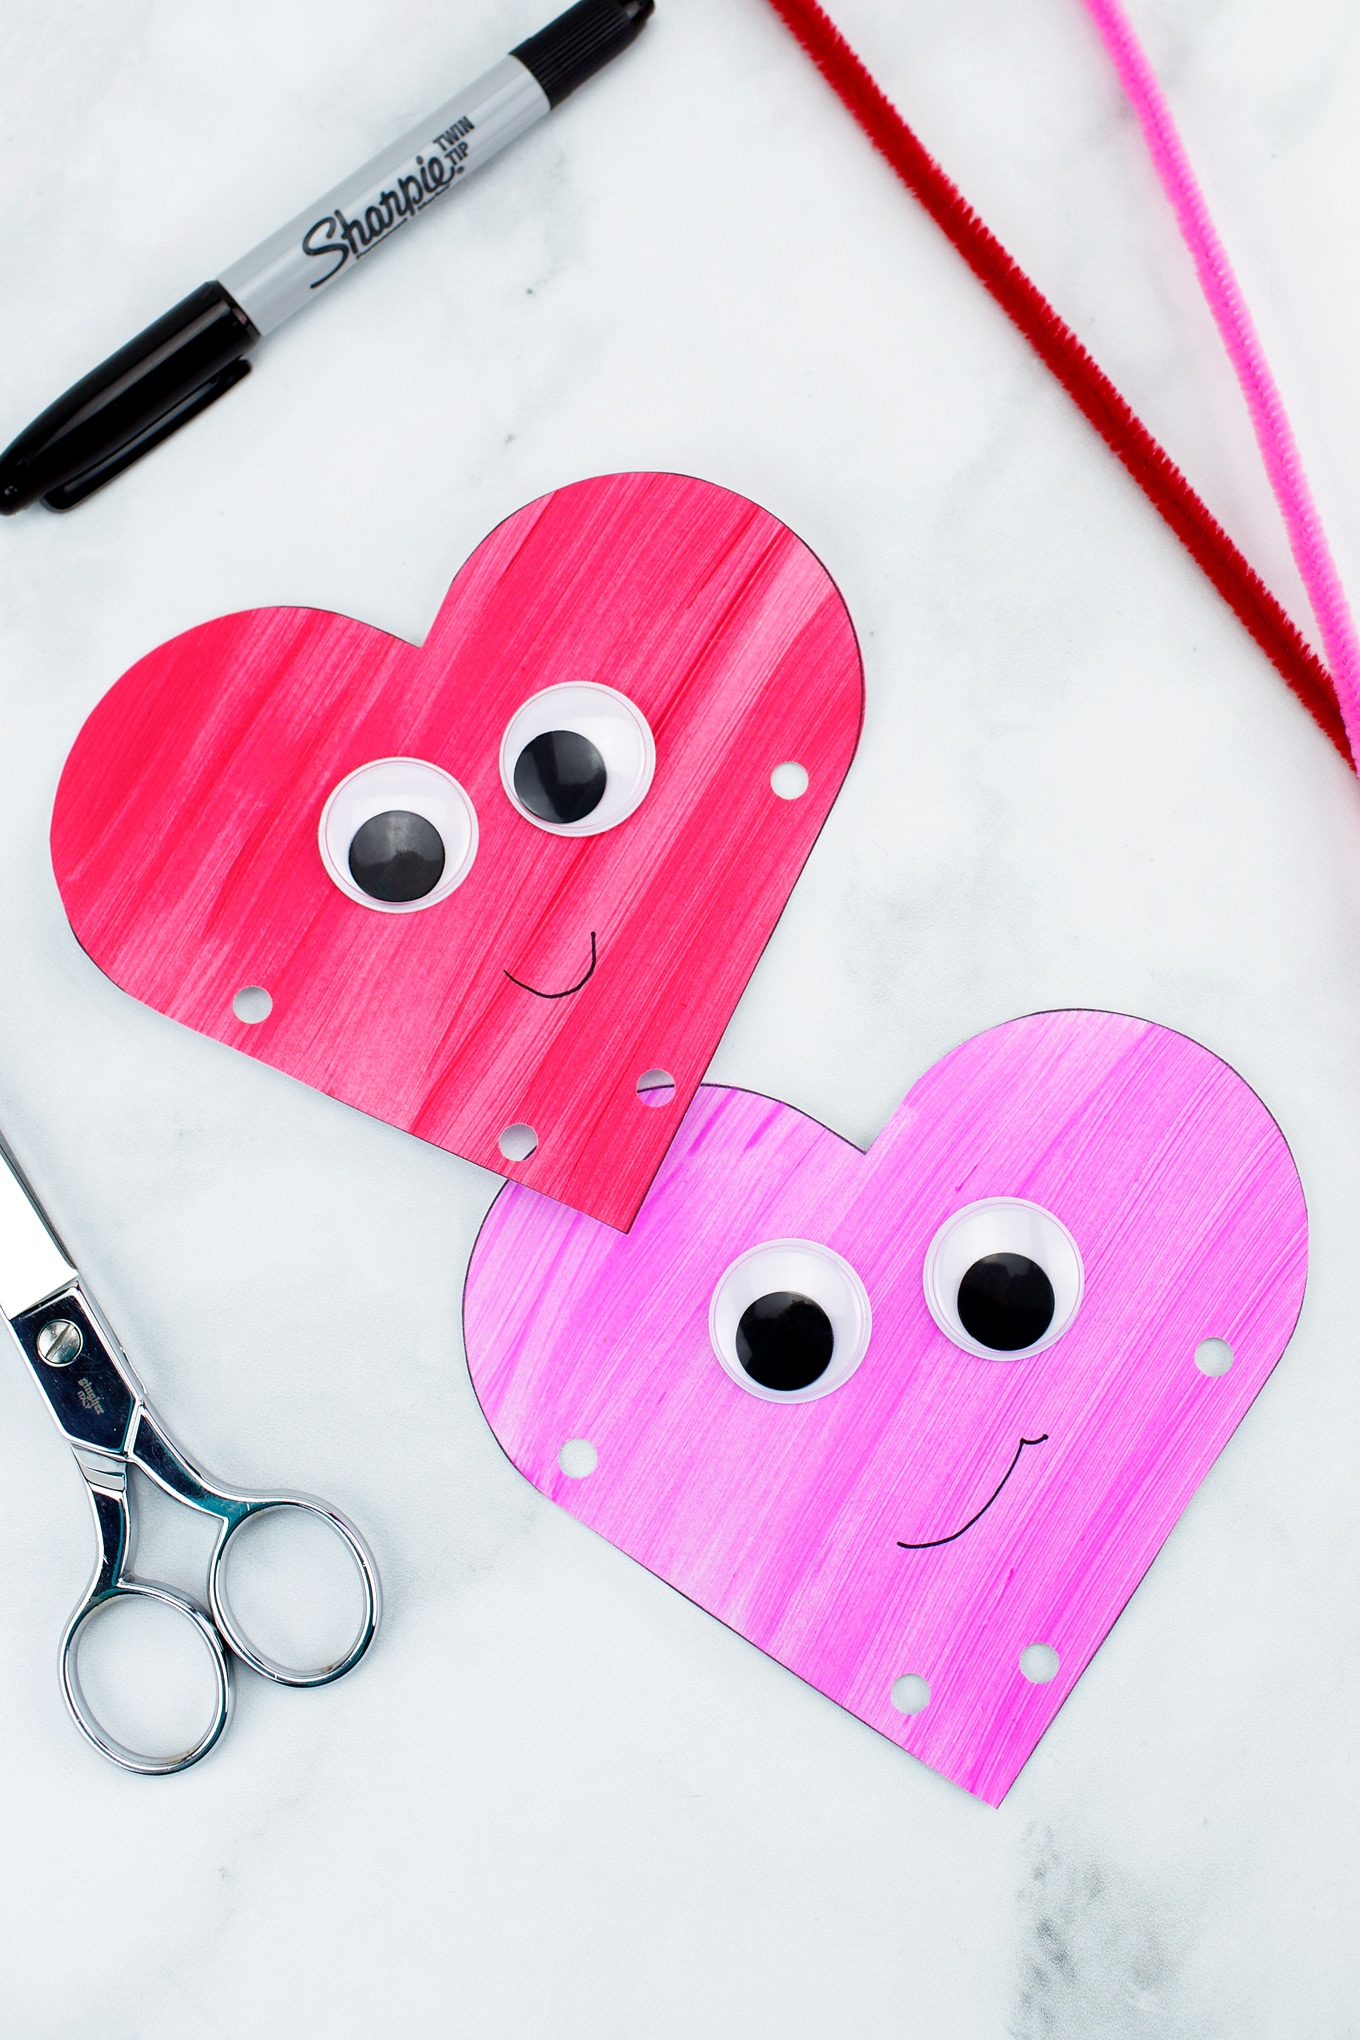 Creating Heart Buddies Easy Valentine's Day Craft for Kids